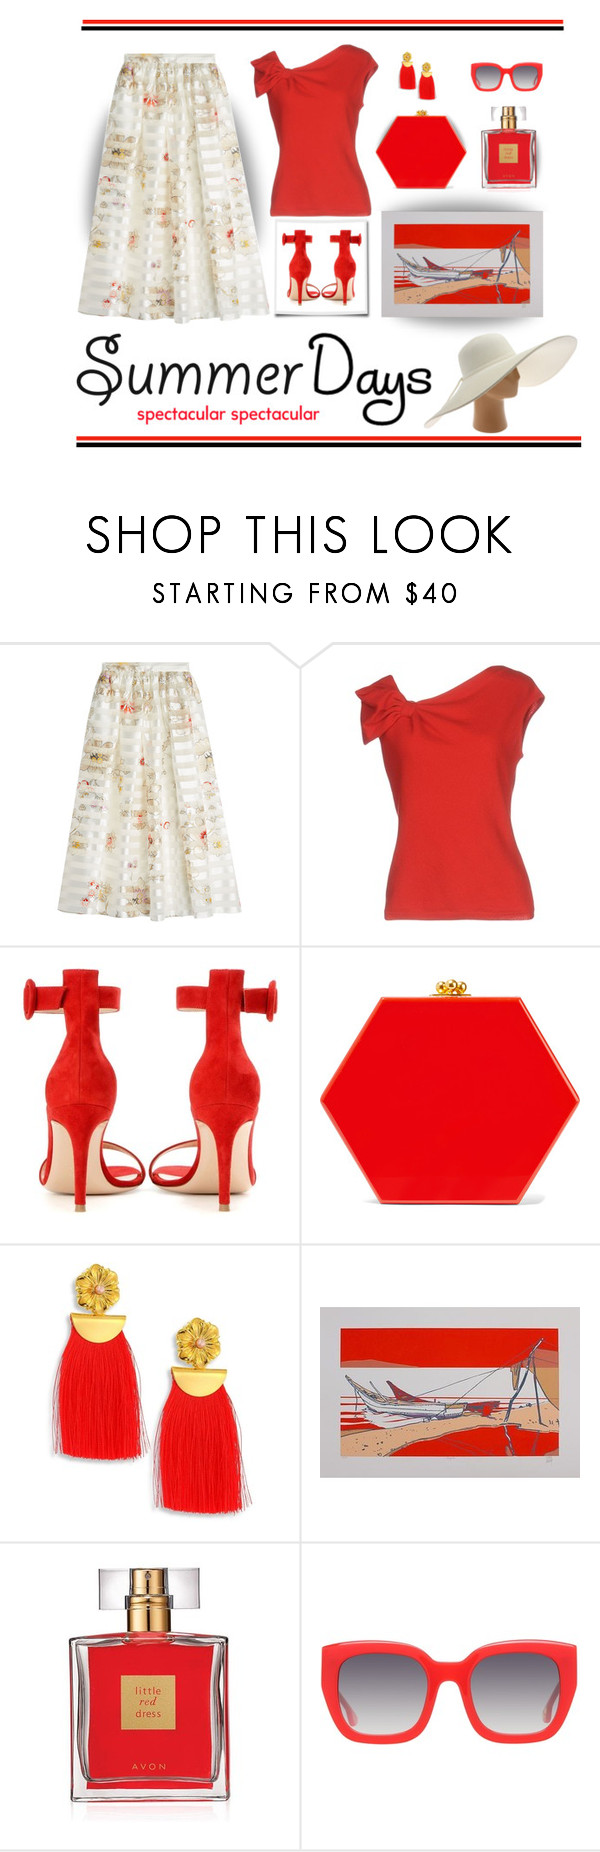 """""""Hot Summer Days"""" by outfitsloveyou ❤ liked on Polyvore featuring Fendi, Valentino, Gianvito Rossi, Edie Parker, Lizzie Fortunato, NOVICA, Avon, Alice + Olivia and San Diego Hat Co."""